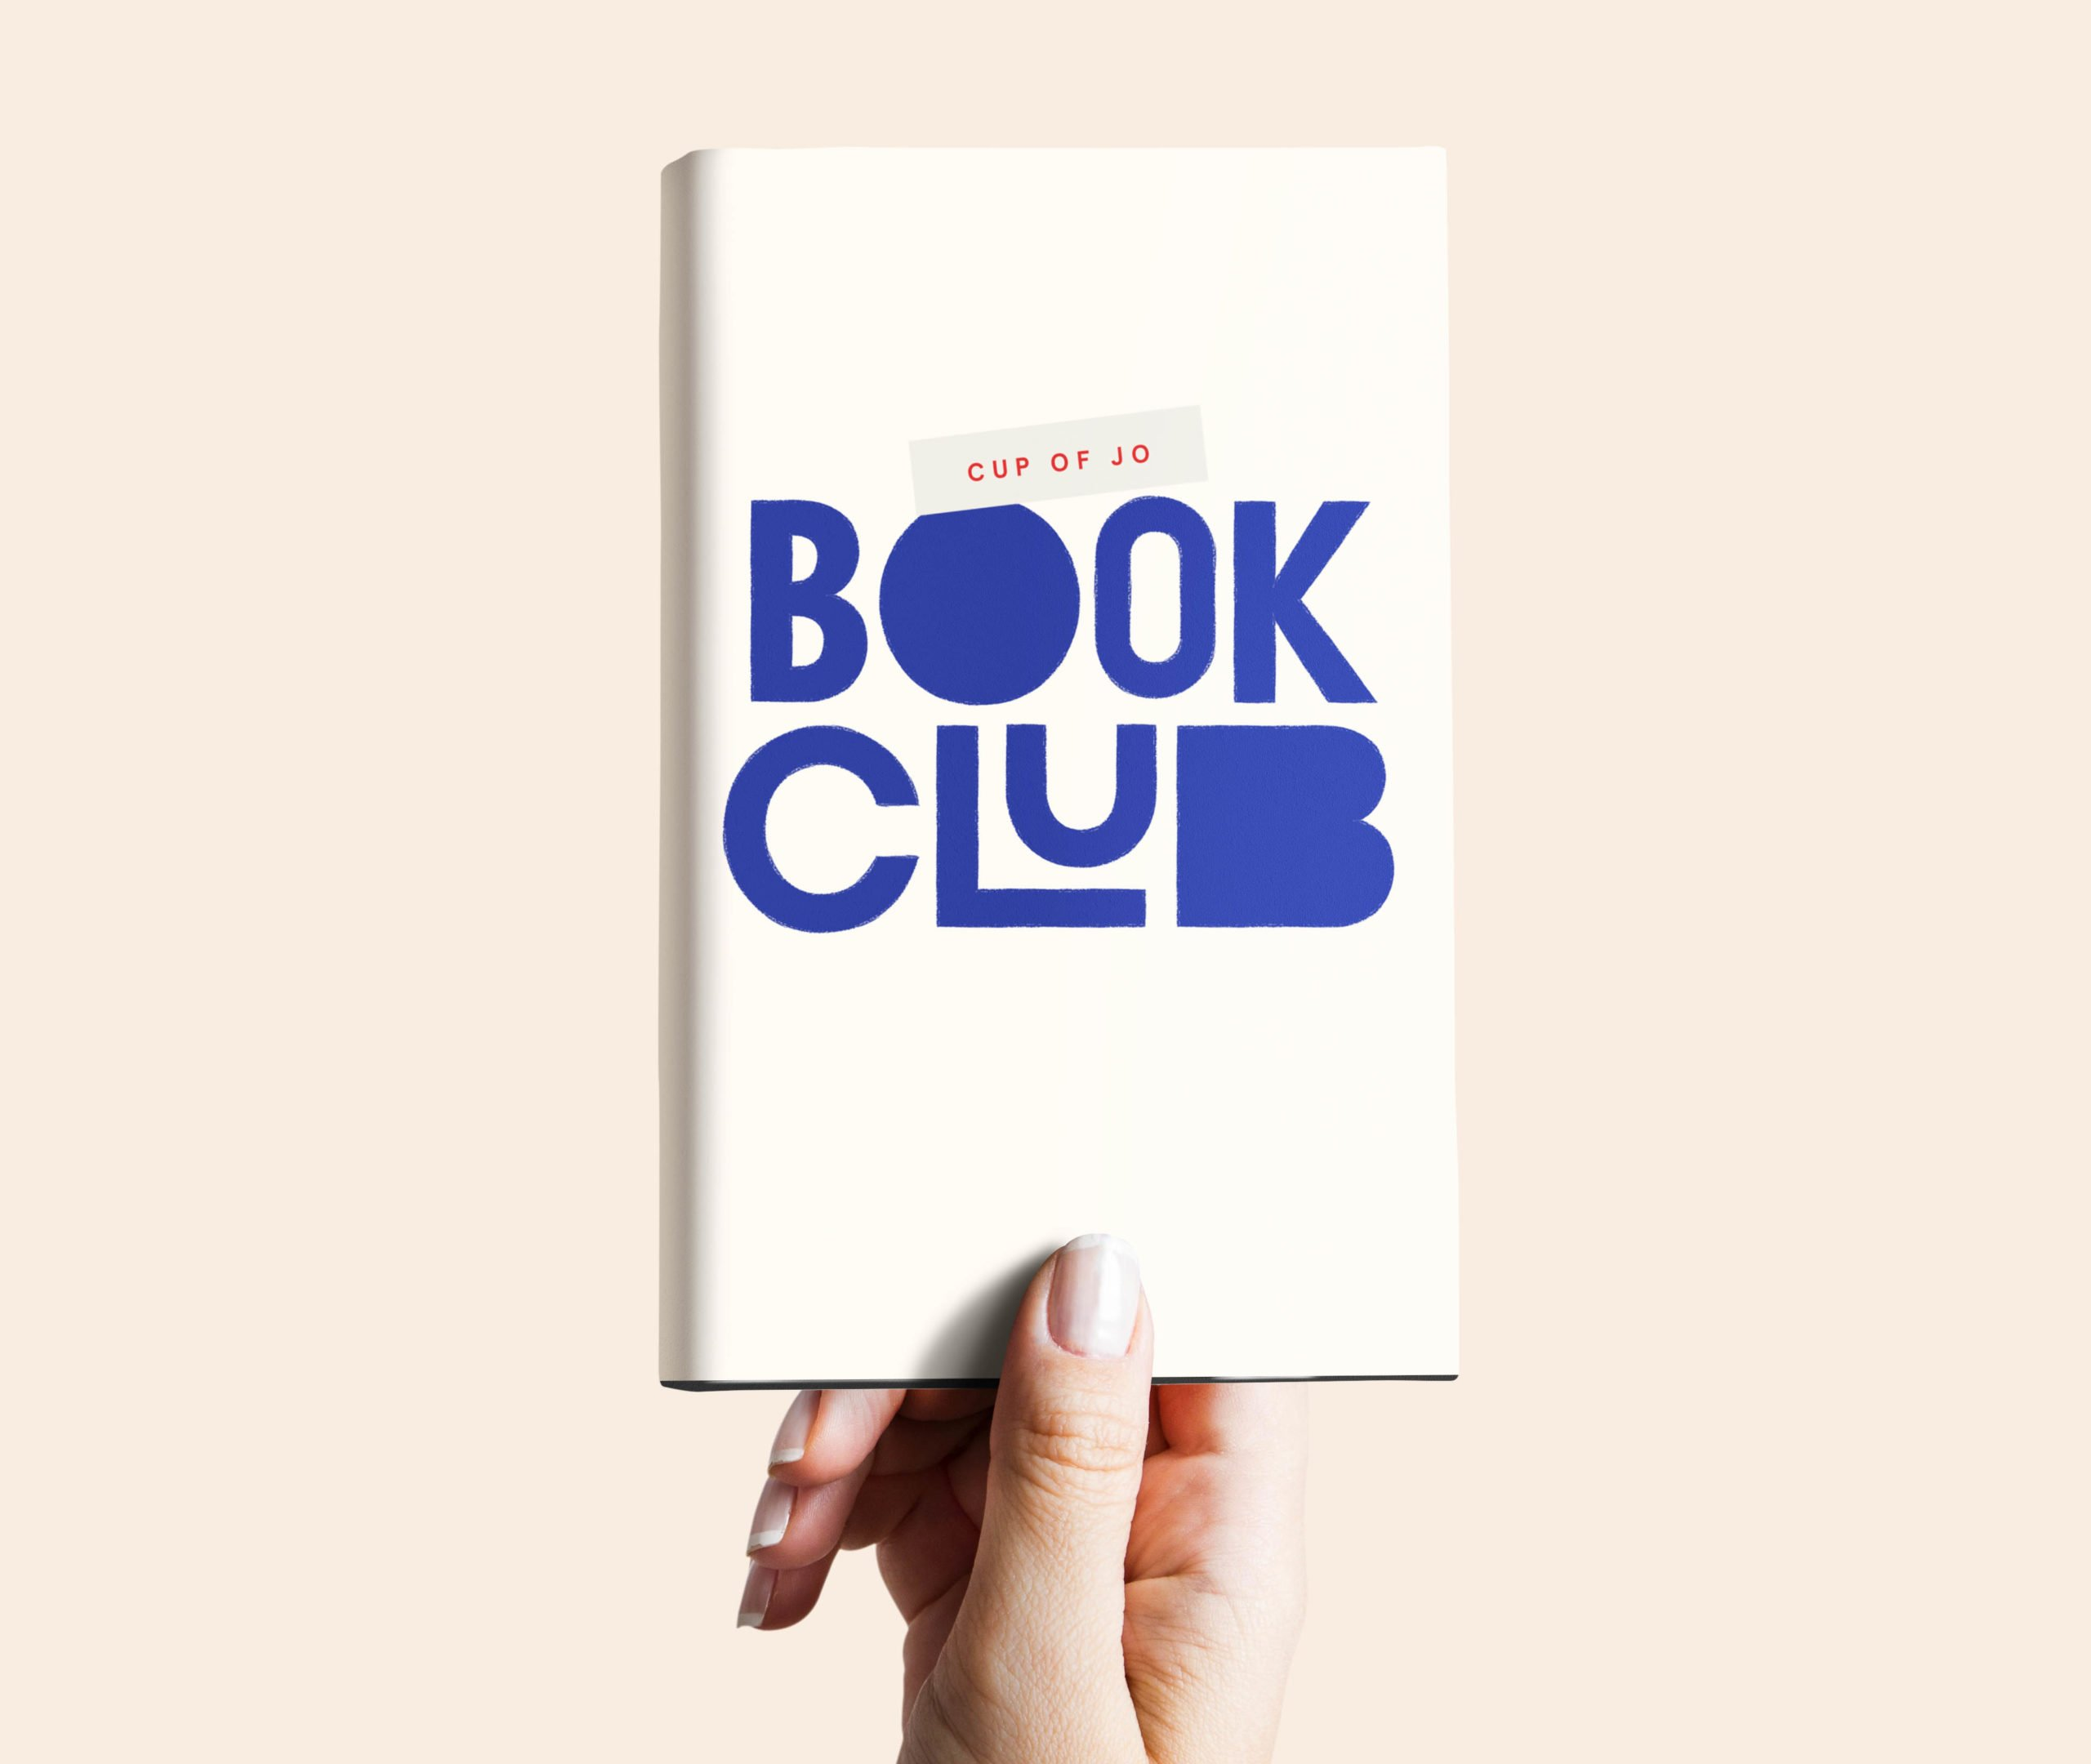 Cup of Jo book club